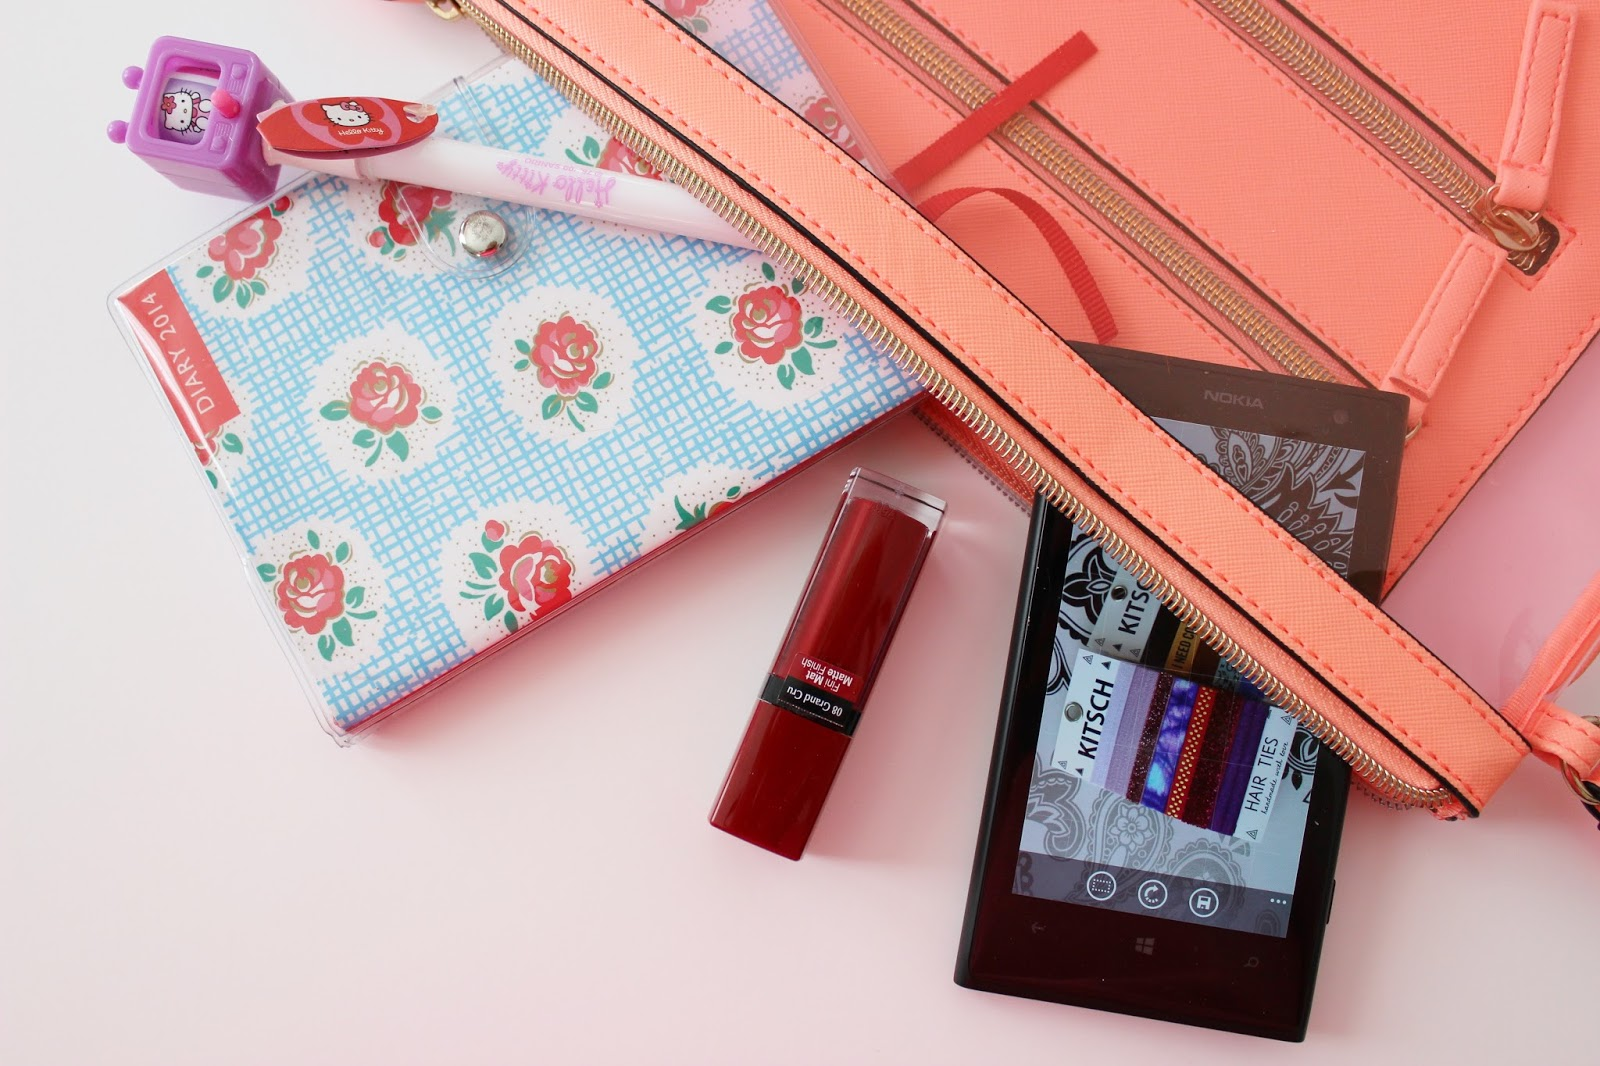 blogging on the go essentials ft. diary, pen and nokia lumia 1020